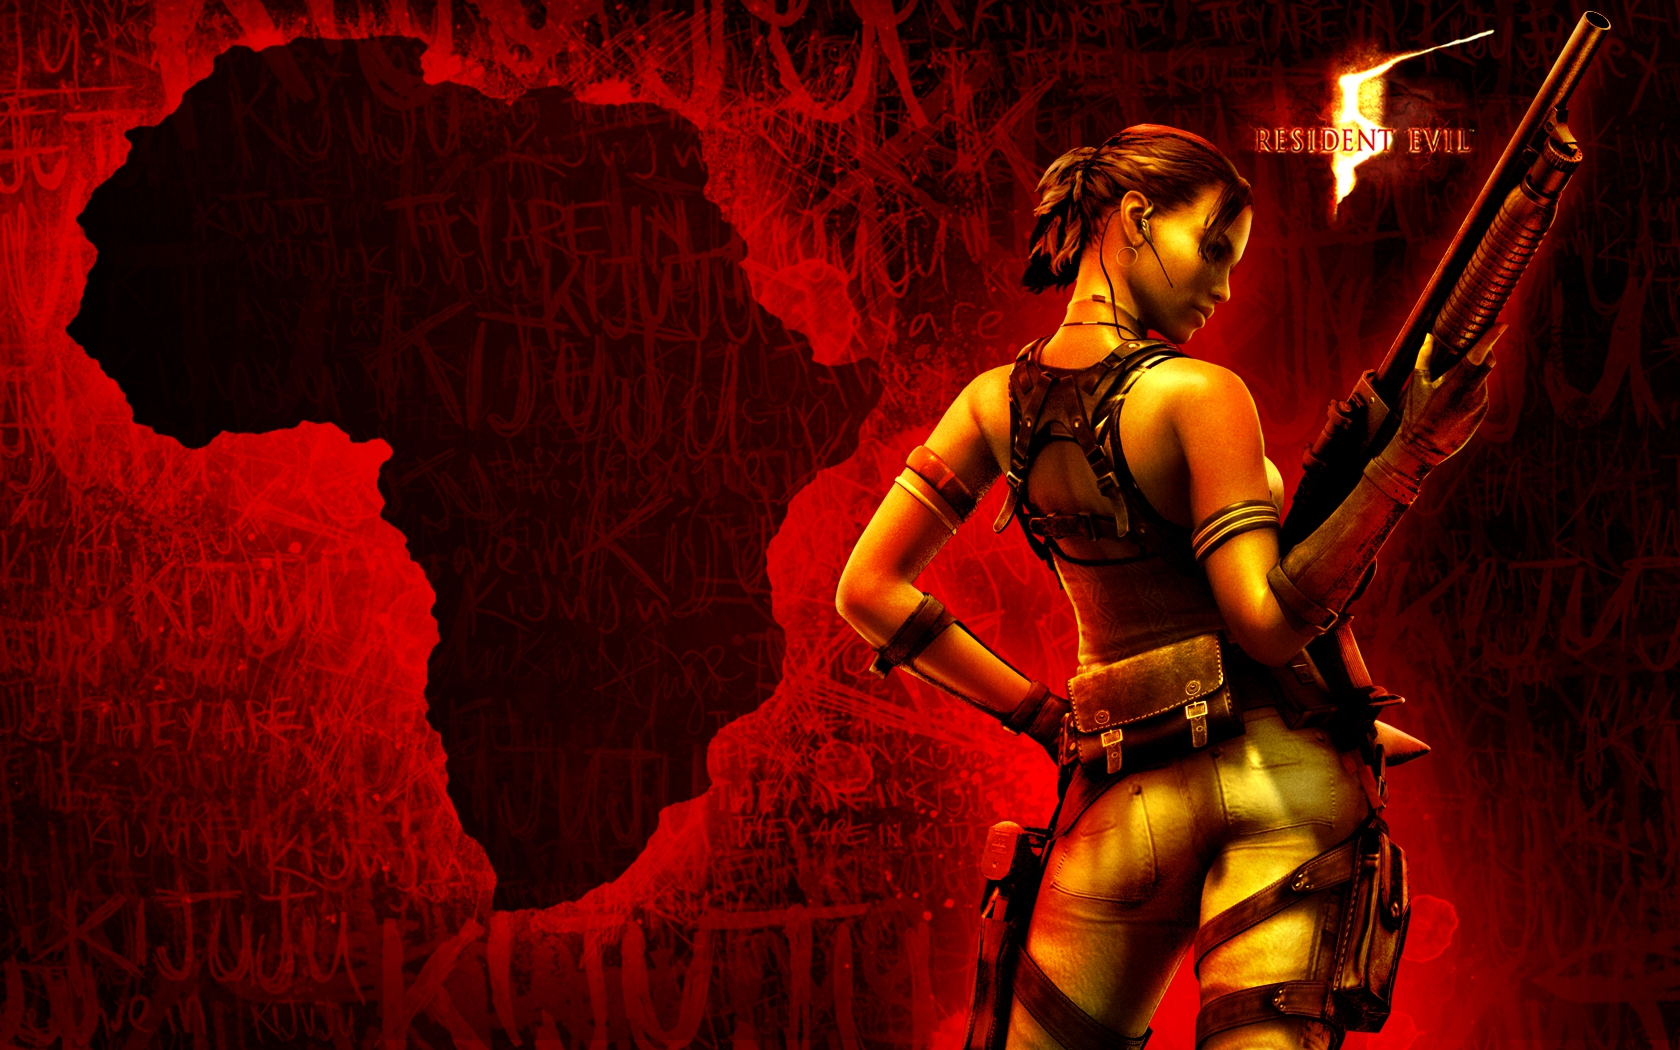 Resident evil wallpapers high quality download free - Wallpaper resident evil 5 ...